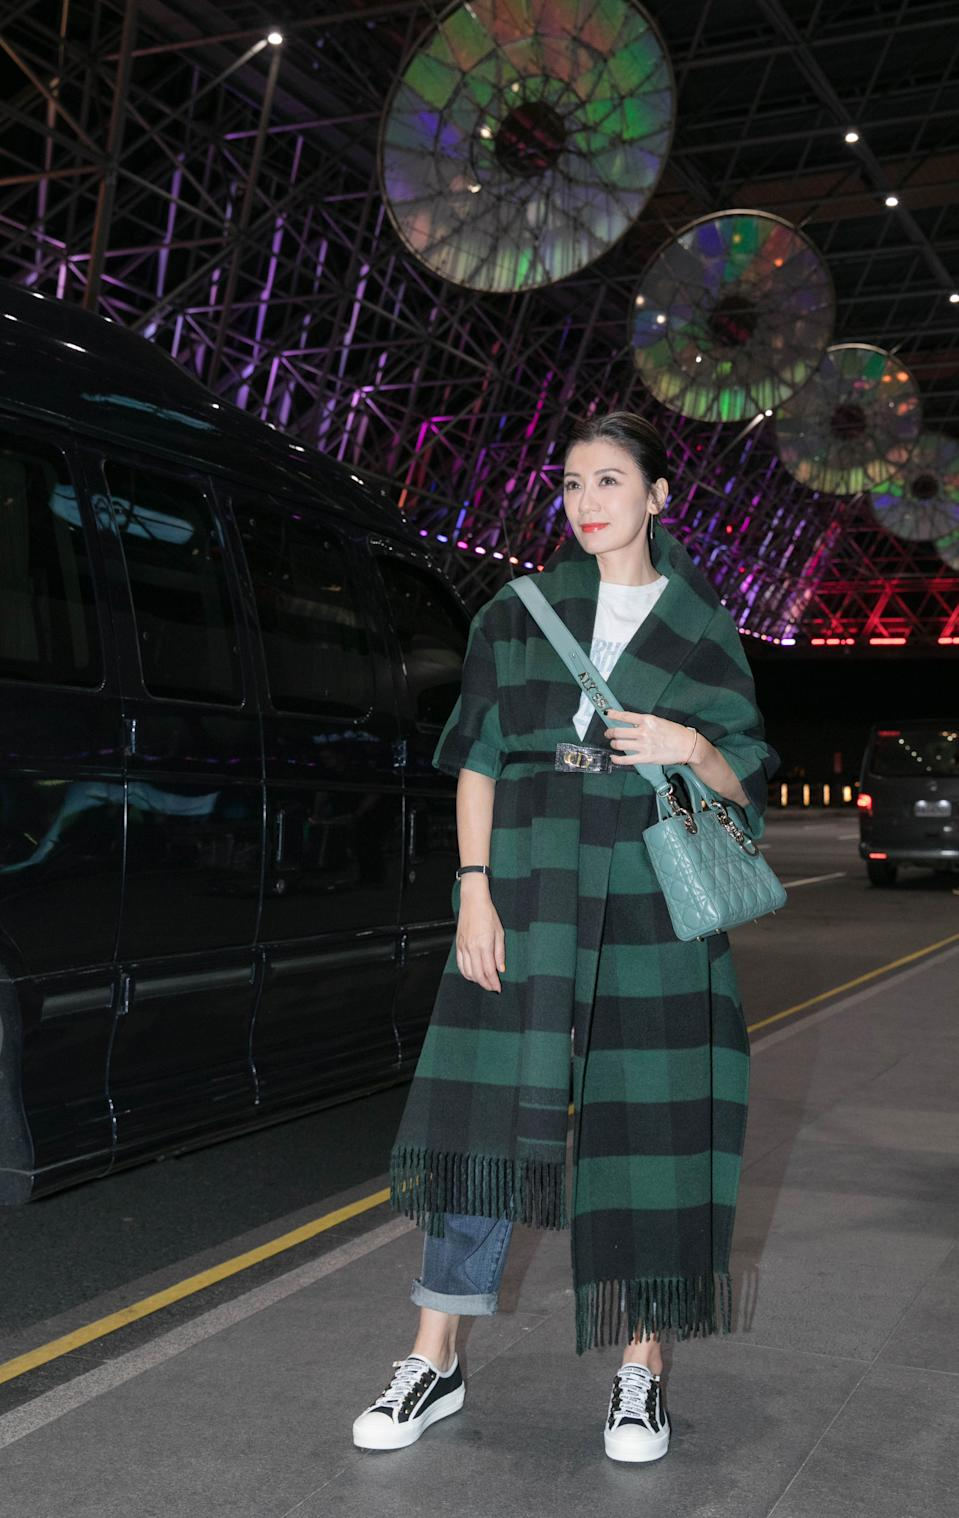 Taiwanese actress Alyssa Chia (@alyssachia) wearing Dior outfits, Walk'n'Dior sneakers, My ABCDior bag and Rose des vents fine jewelry pieces and a La D de Dior watch. (PHOTO: Dior)